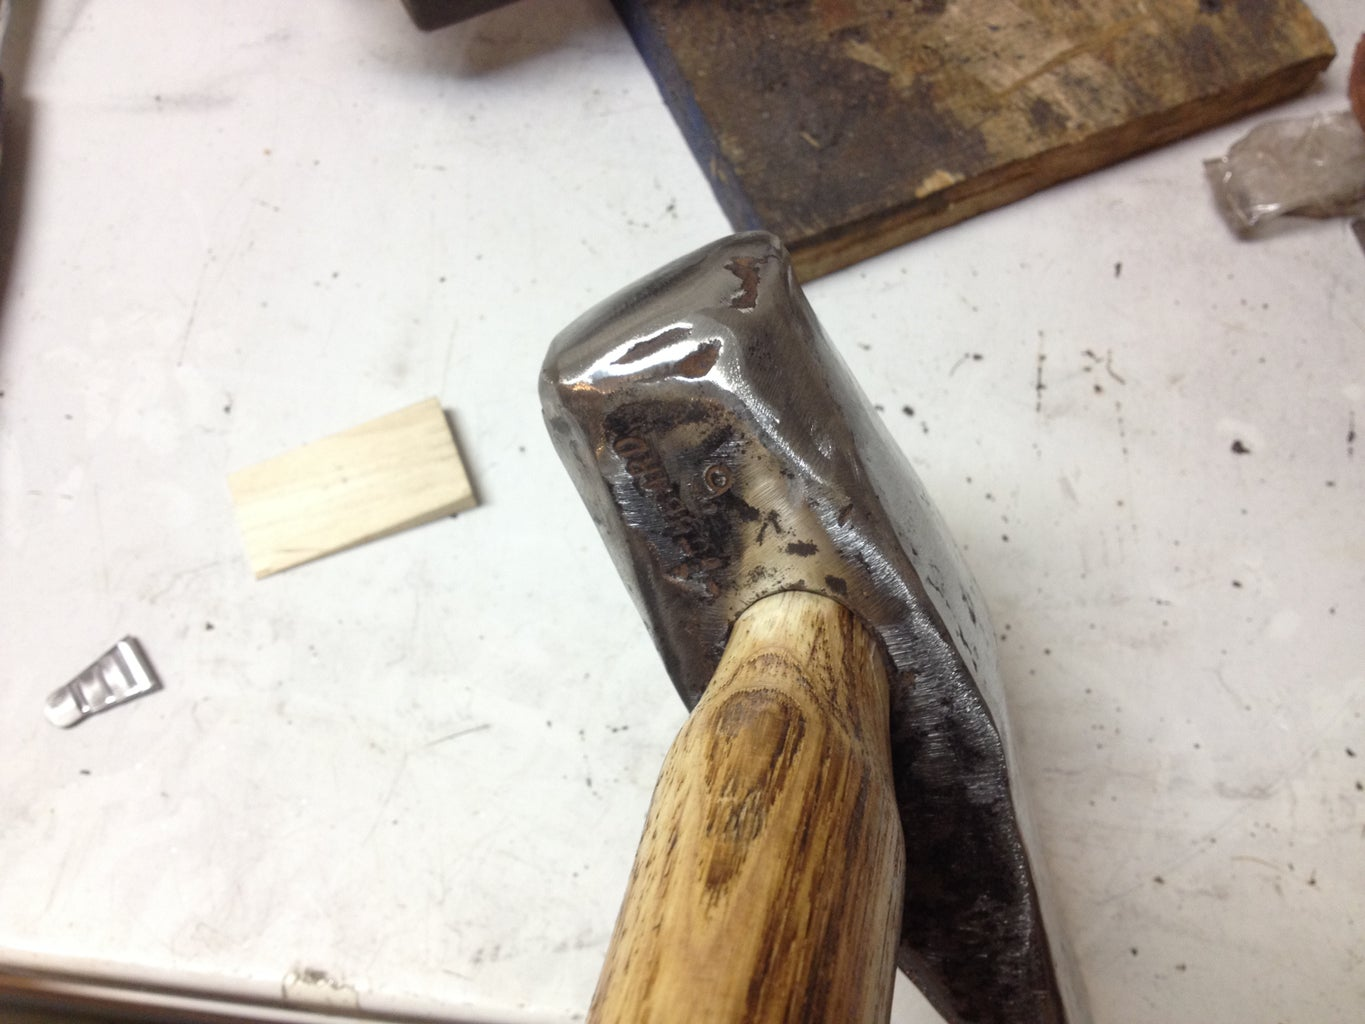 Fitting the Handle